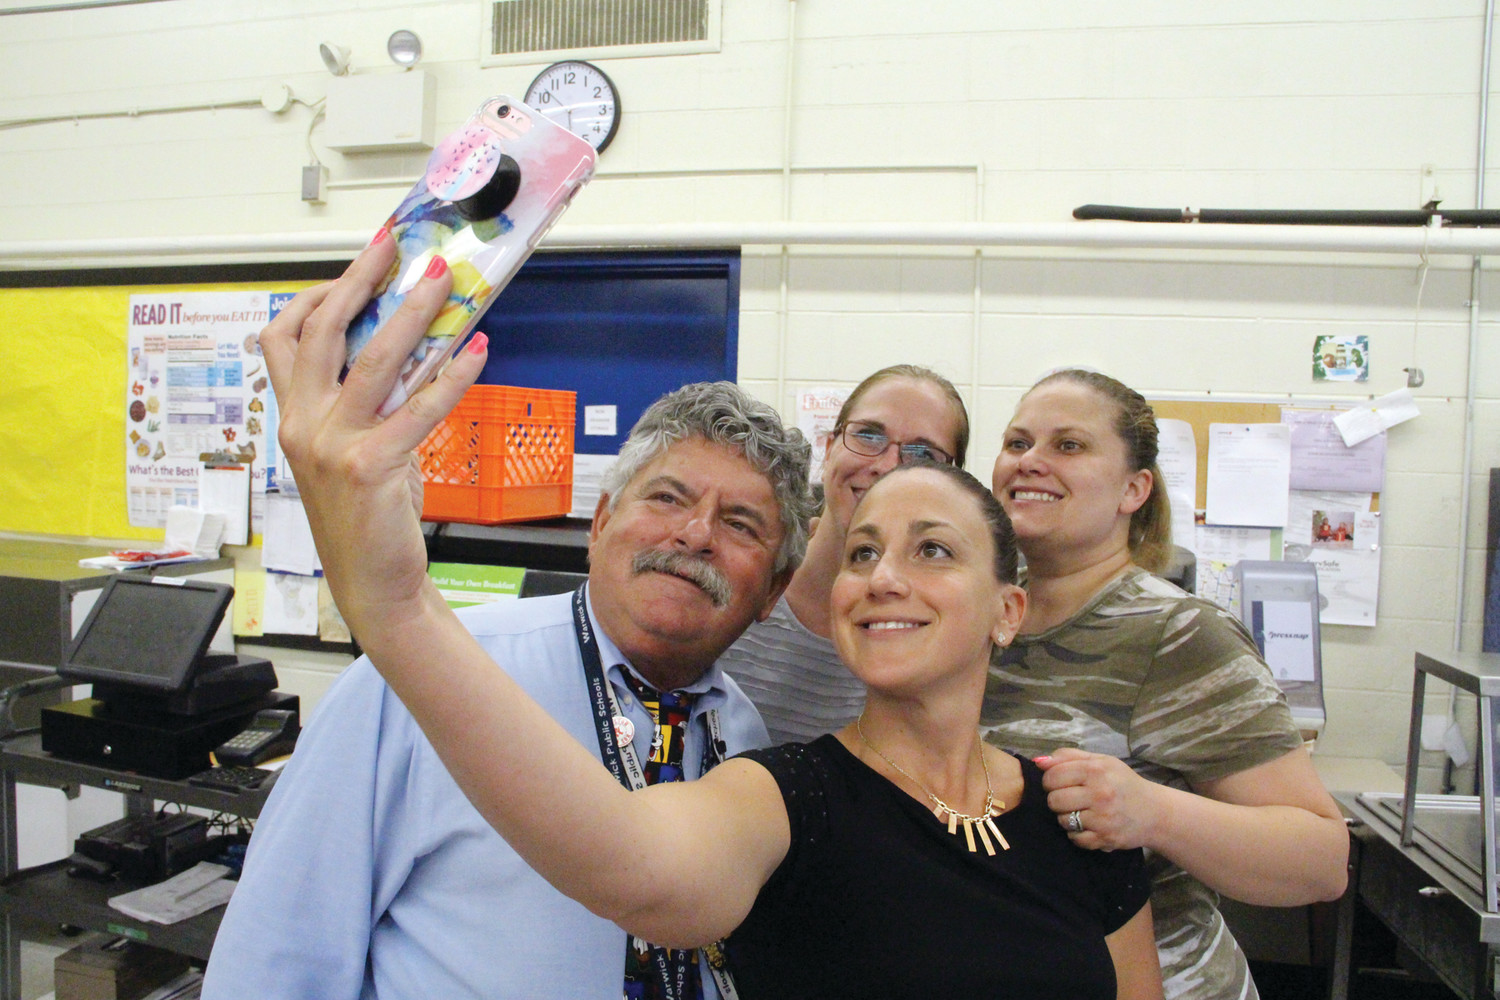 PRINCIPAL SELFIE: Christina Gianfrancesco snaps a selfie with Principal Costa and Brandy Pezza and Nikki Carpenter. All members of the PTO, the three women helped plan and run Friday's event.